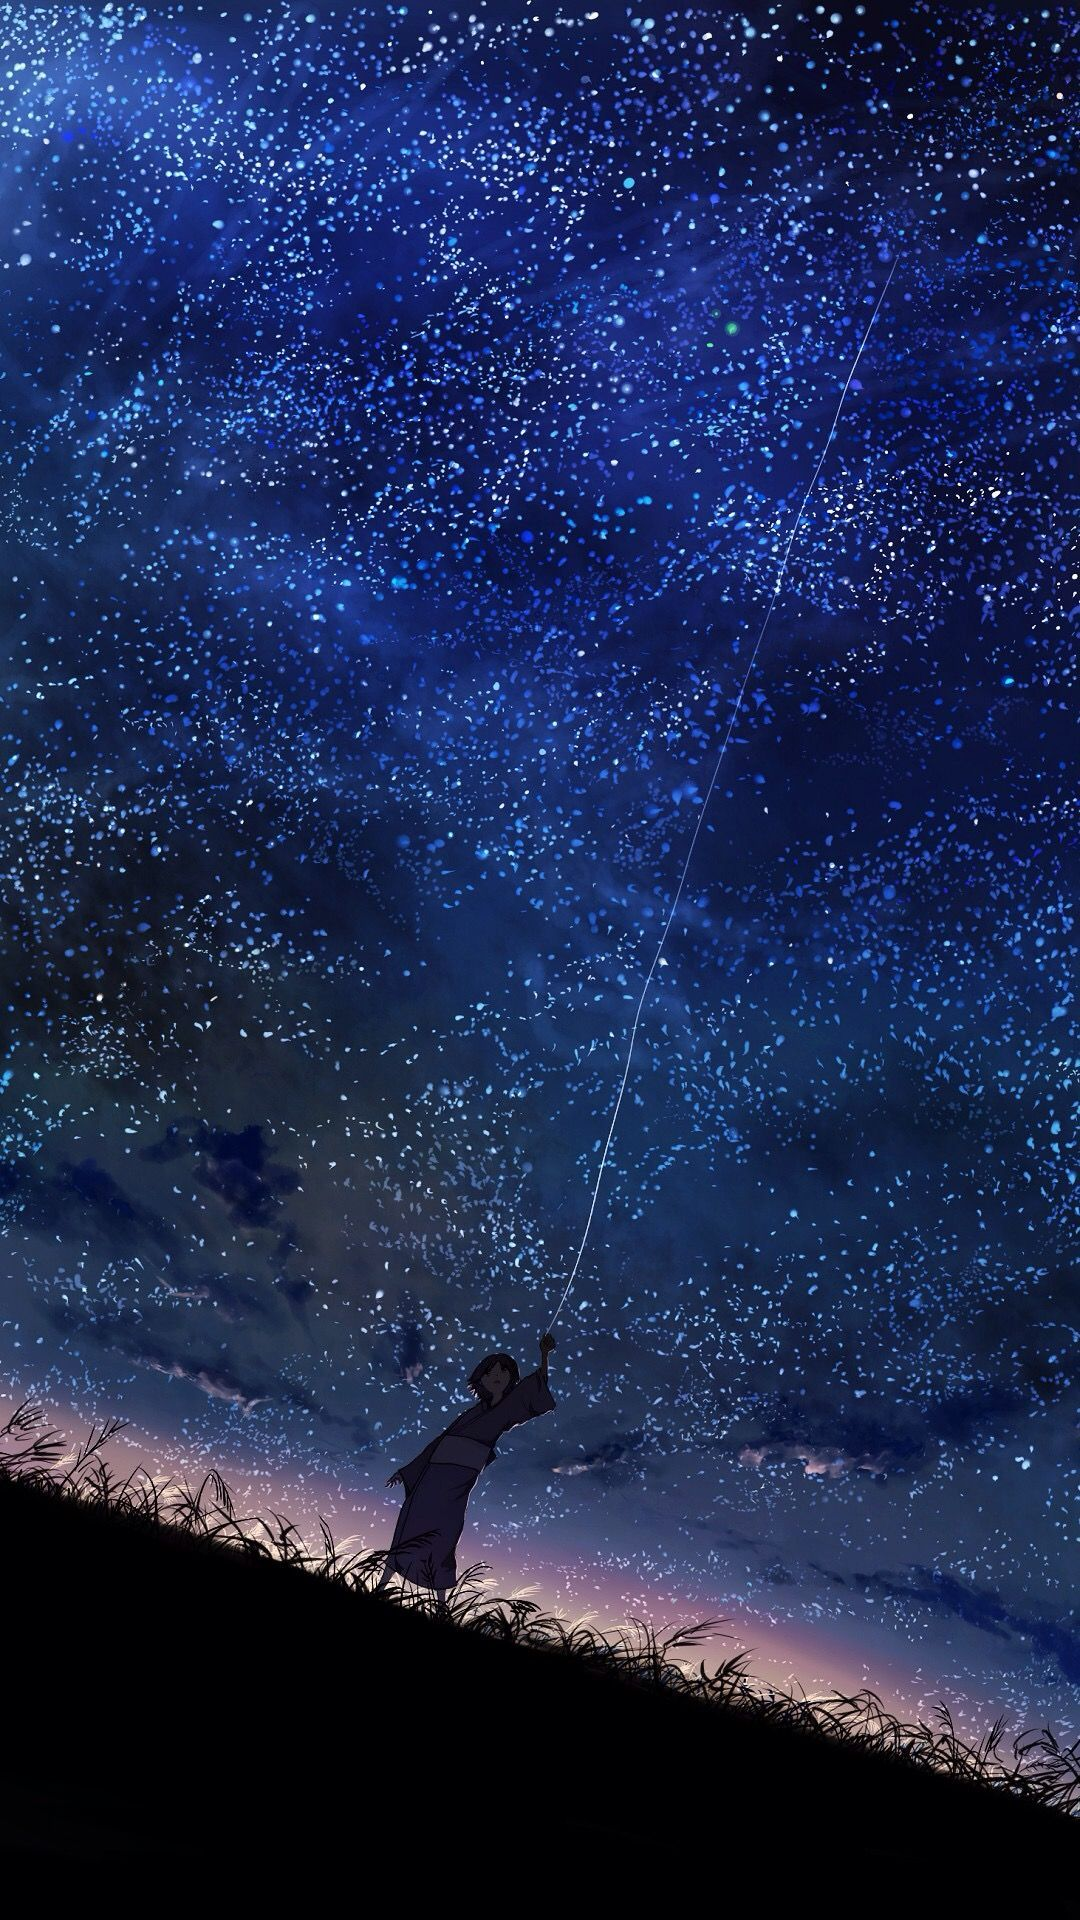 1080x1920 starry skyscape / anime art | Dreamy SKYSCAPES. | Pinterest | Anime ...